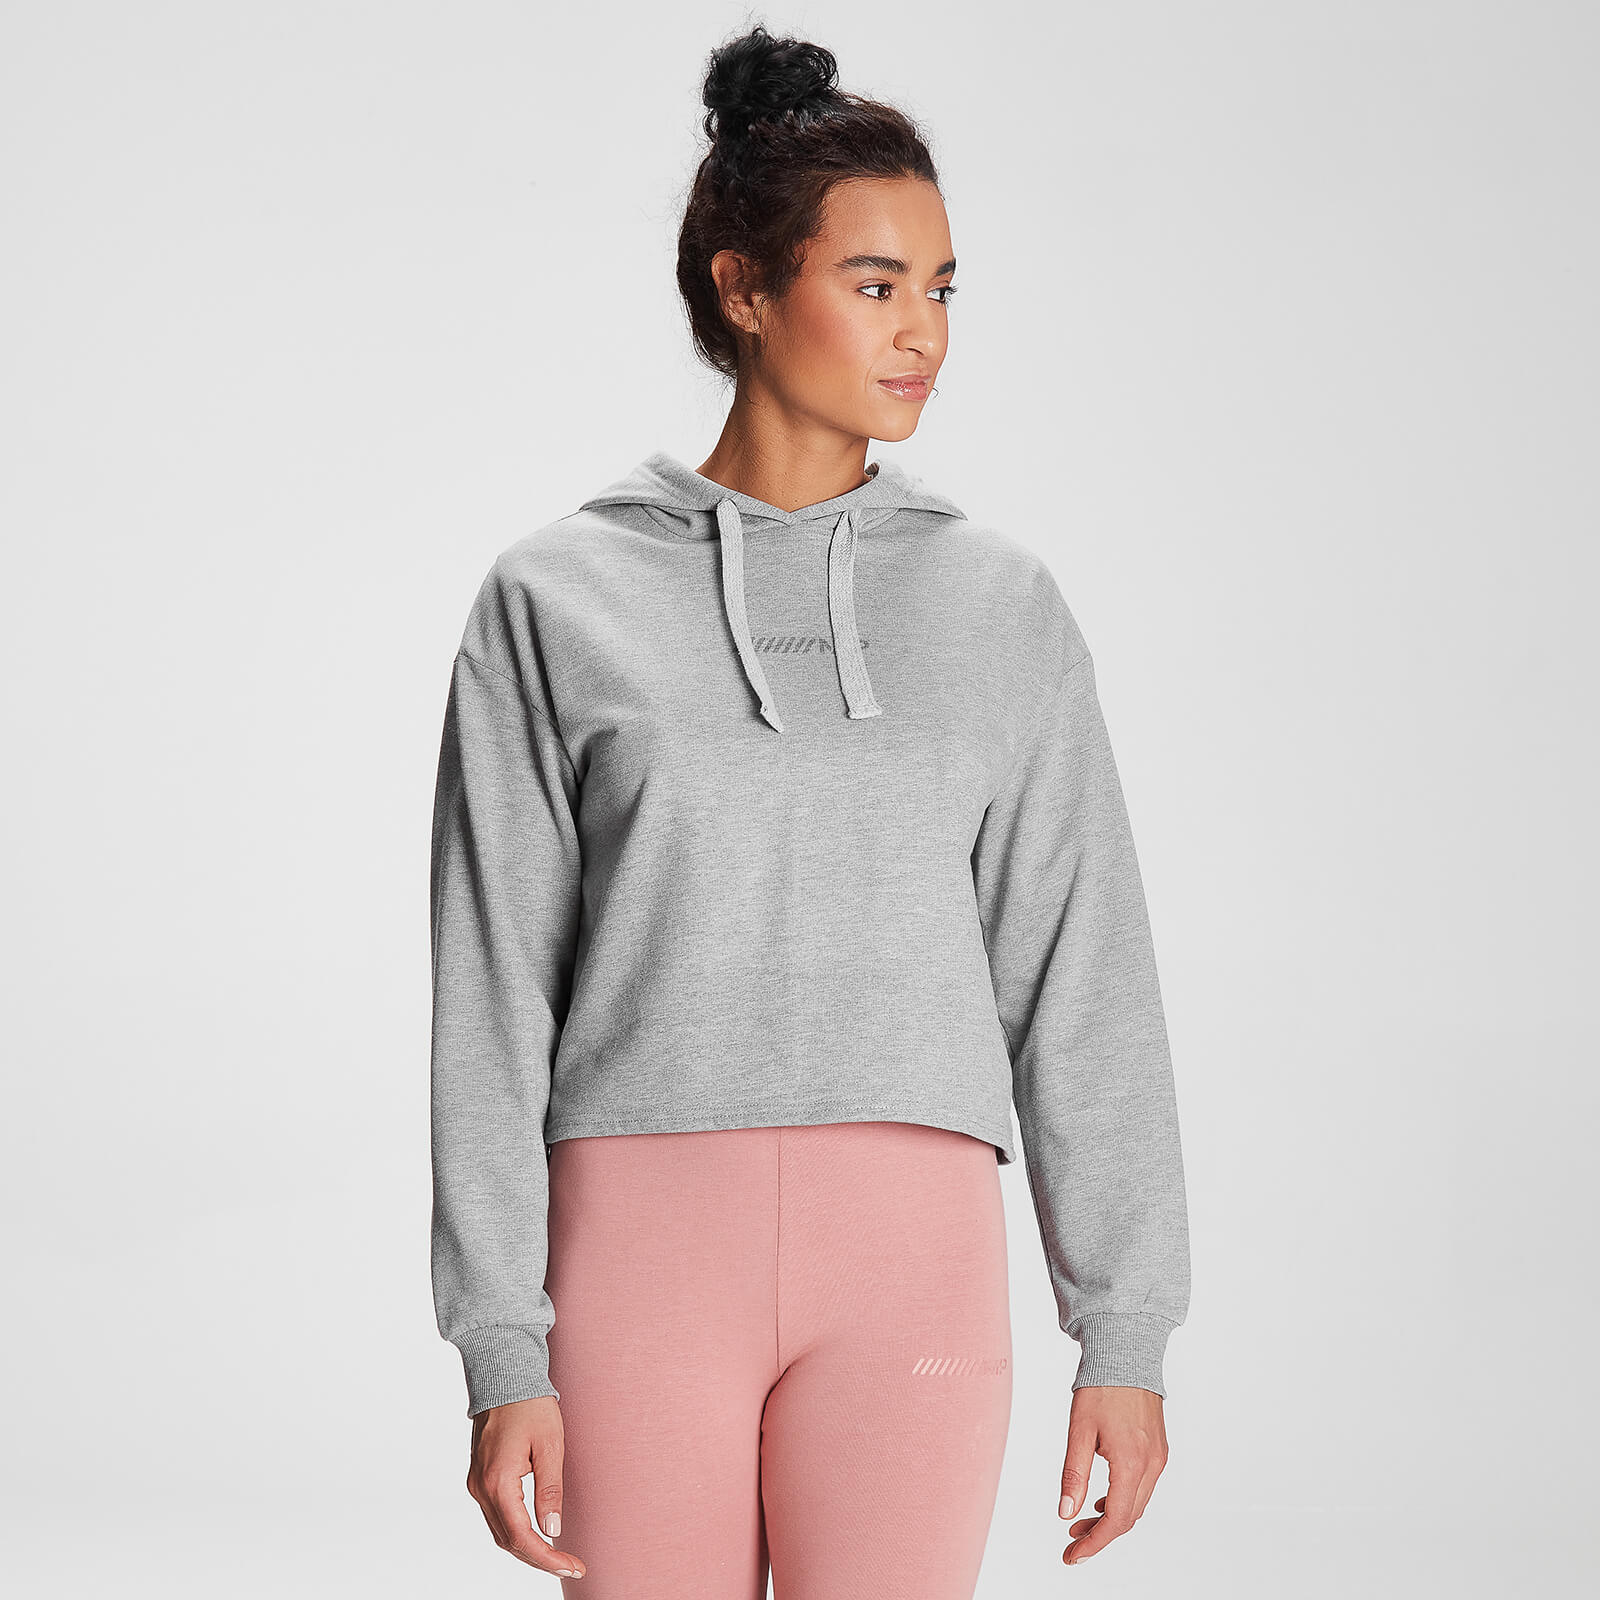 Sweat à capuche MP Tonal Graphic pour femmes – Gris chiné - XL